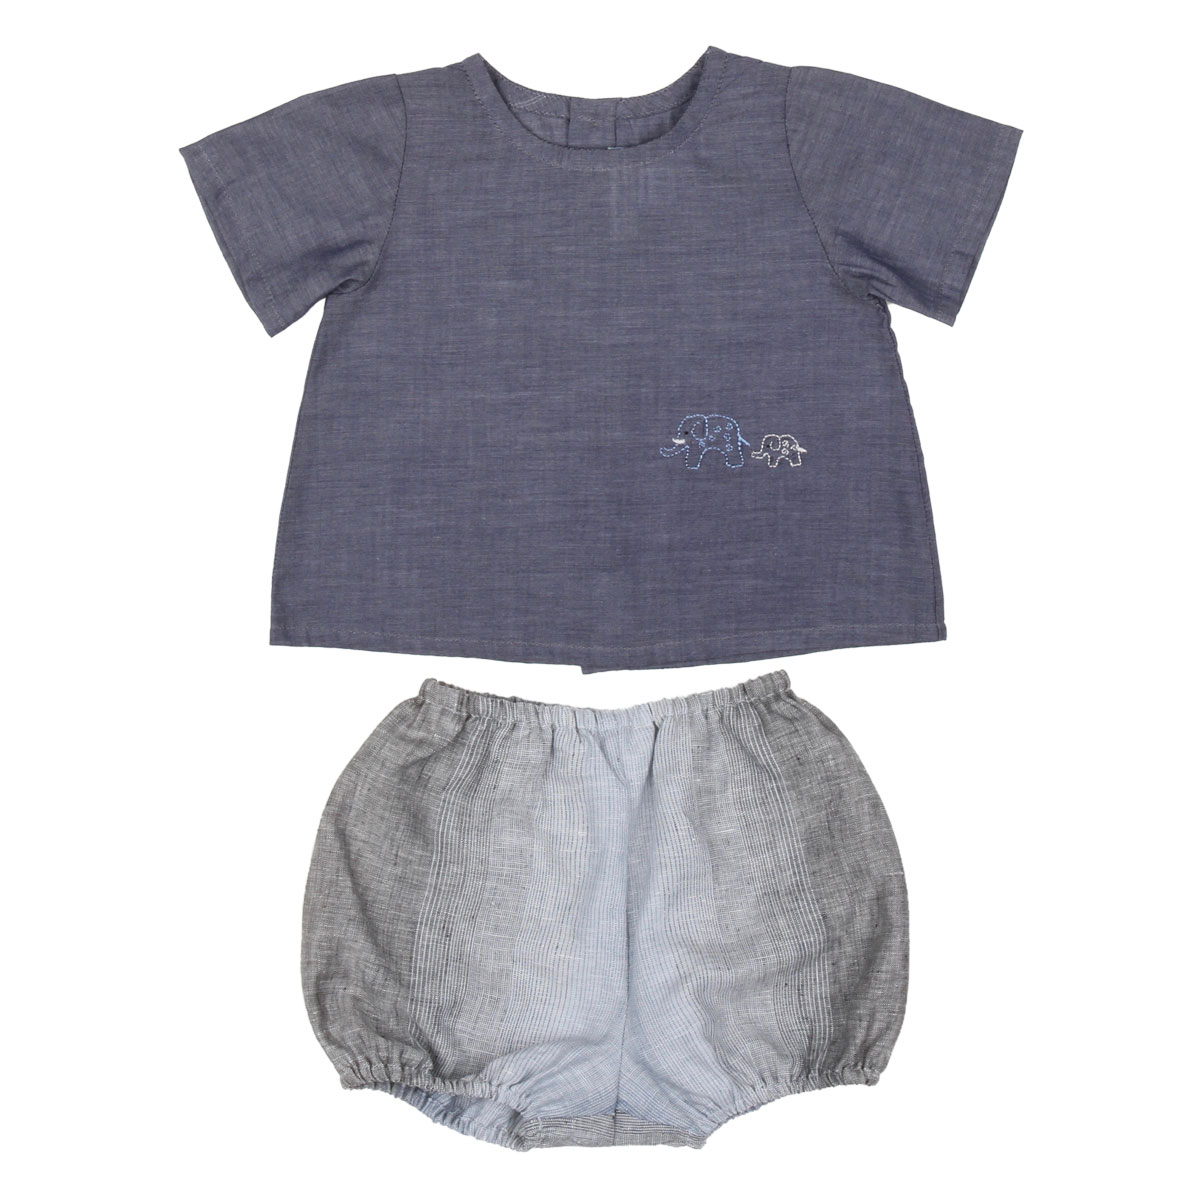 Poeme & Poesie Elephant Shirt and Bloomers